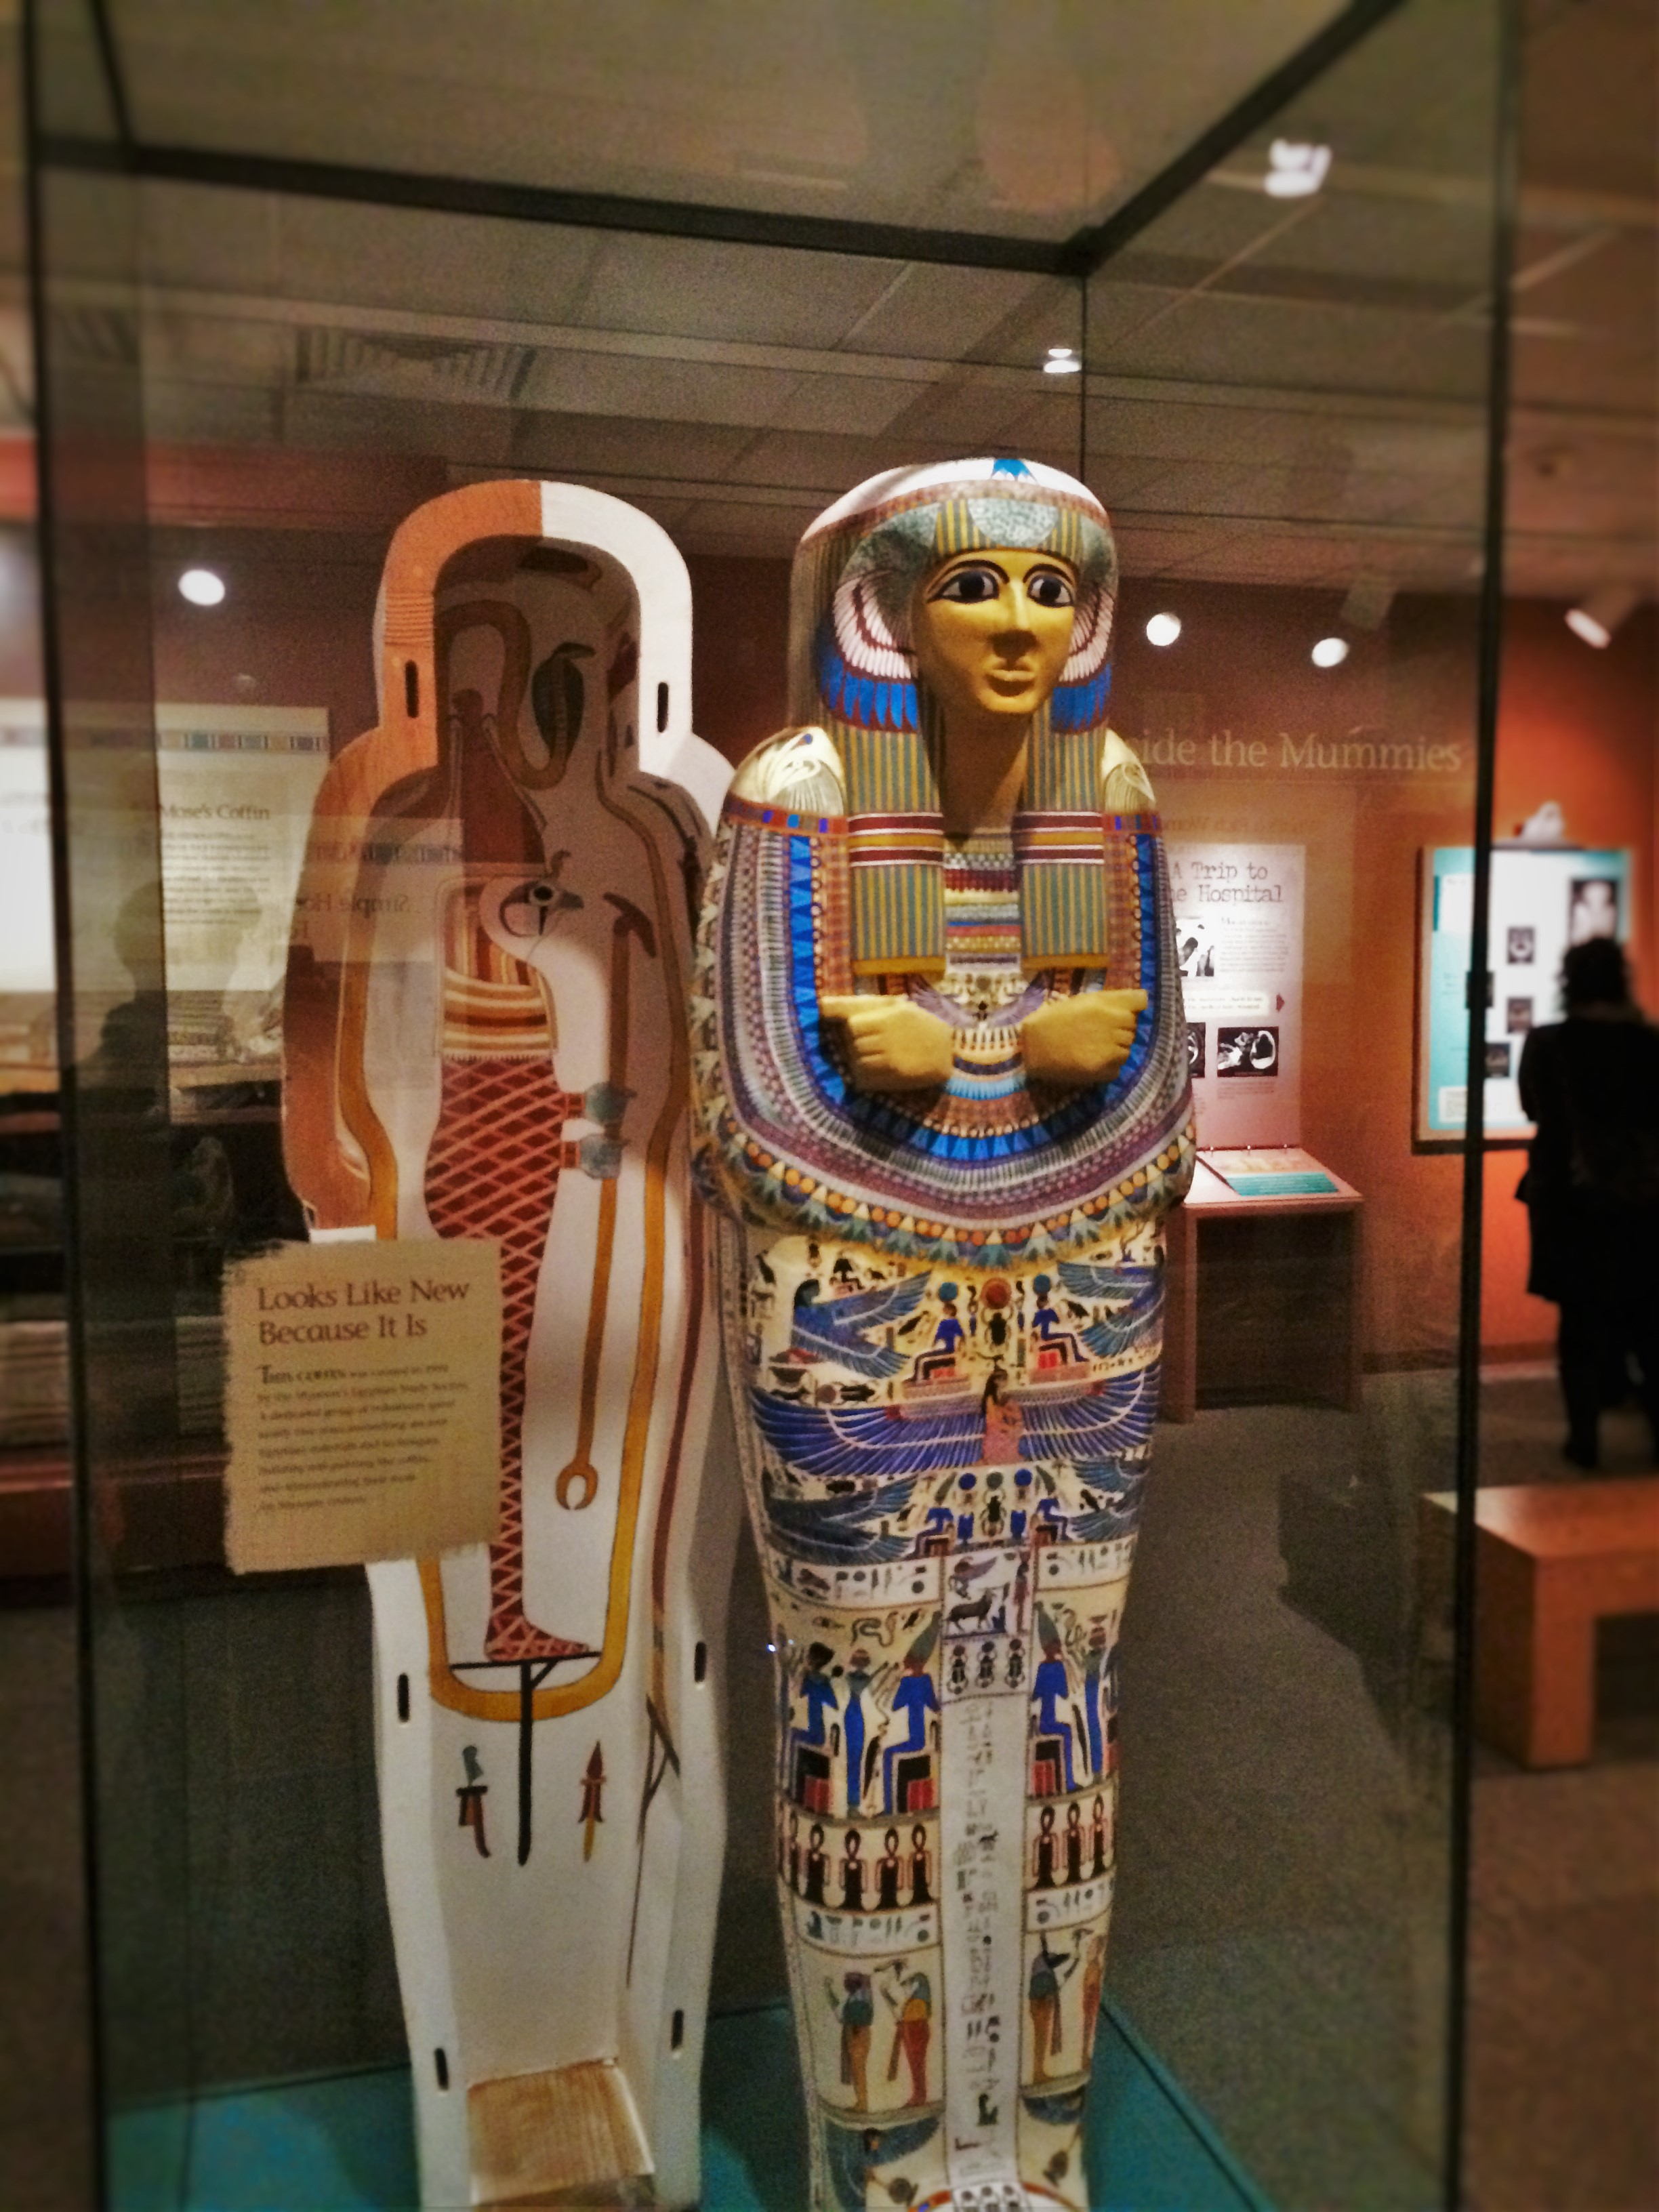 Replica Mummy Case in Denver Museum of Science and Nature